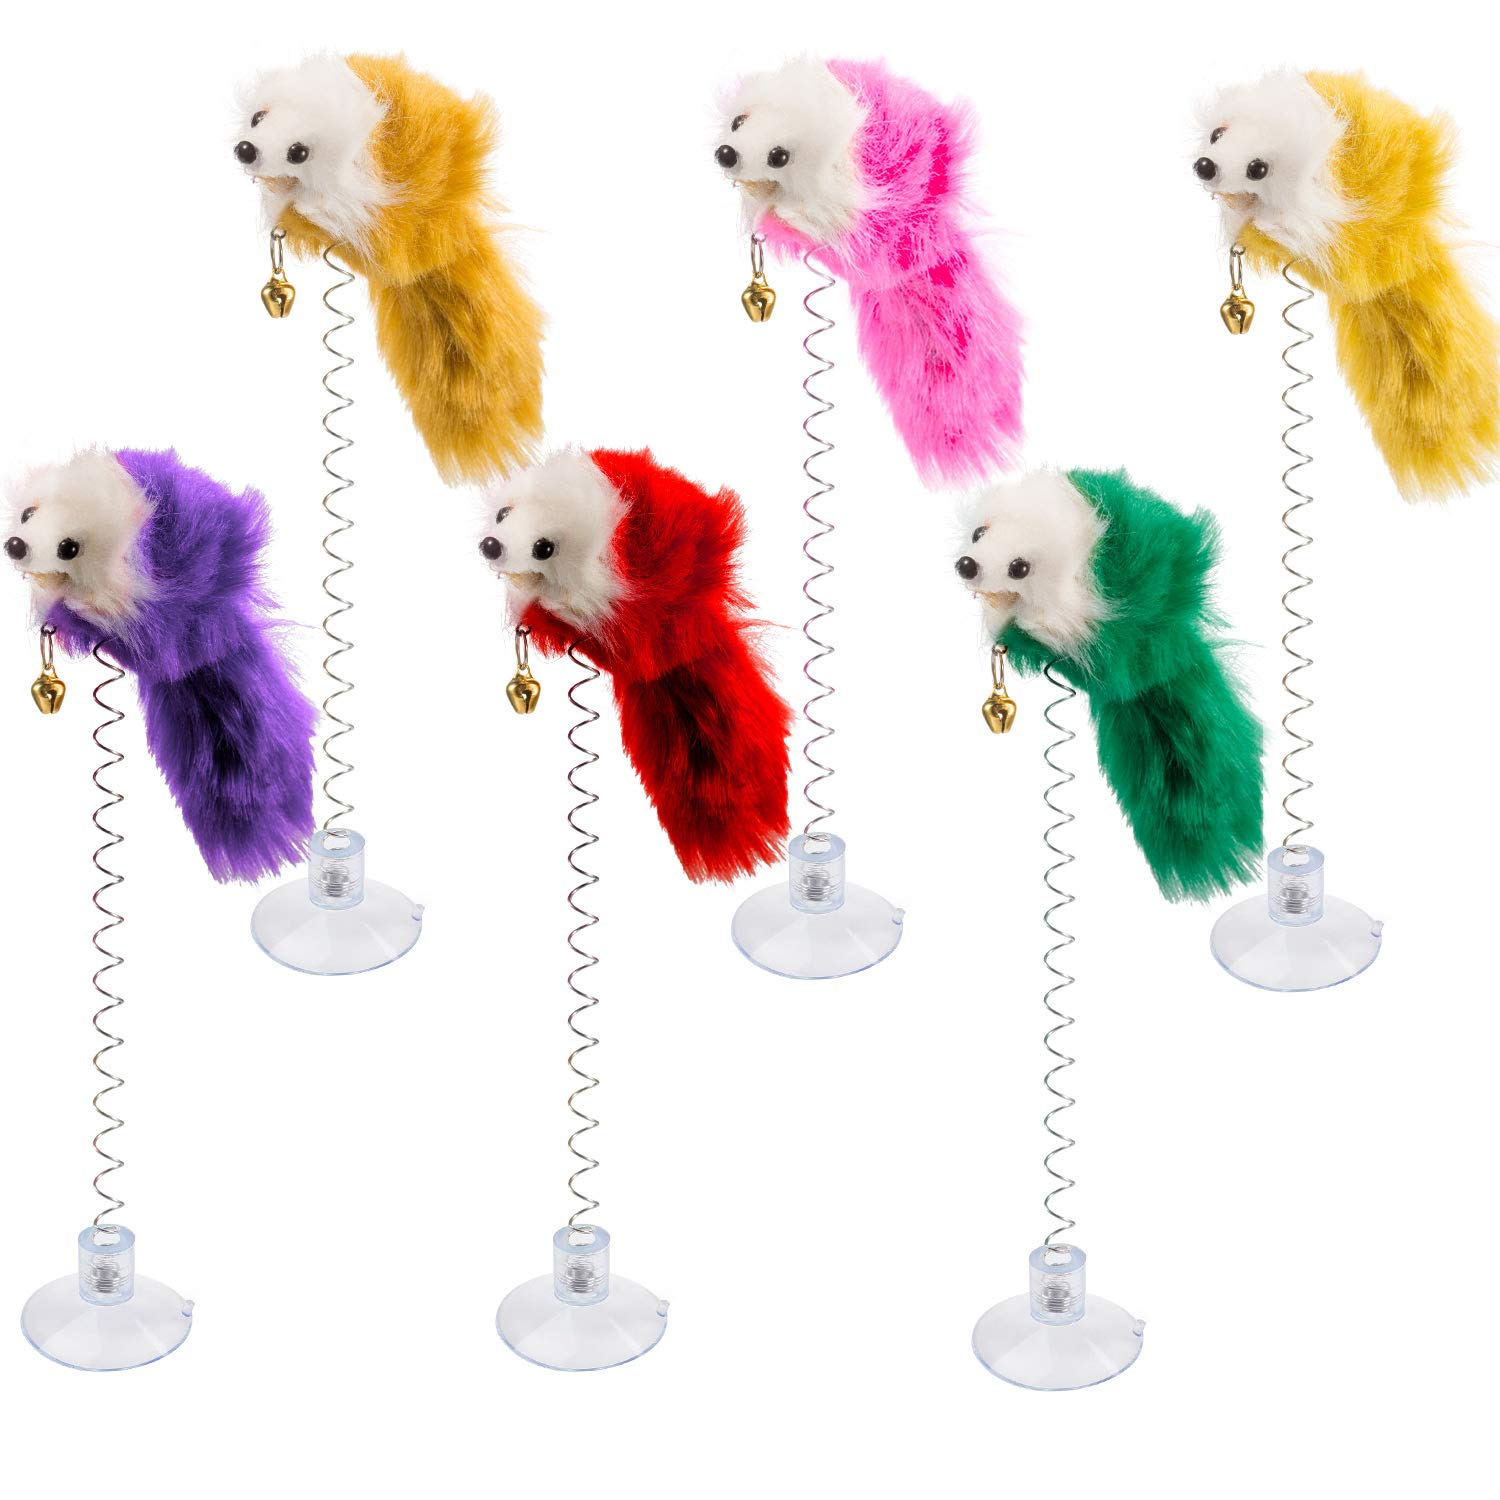 6 Pieces Cat Toys, Mouse Toys for Cats, Furry Pet Cat Toys, Cat Teaser Wand with Bell Tatuo